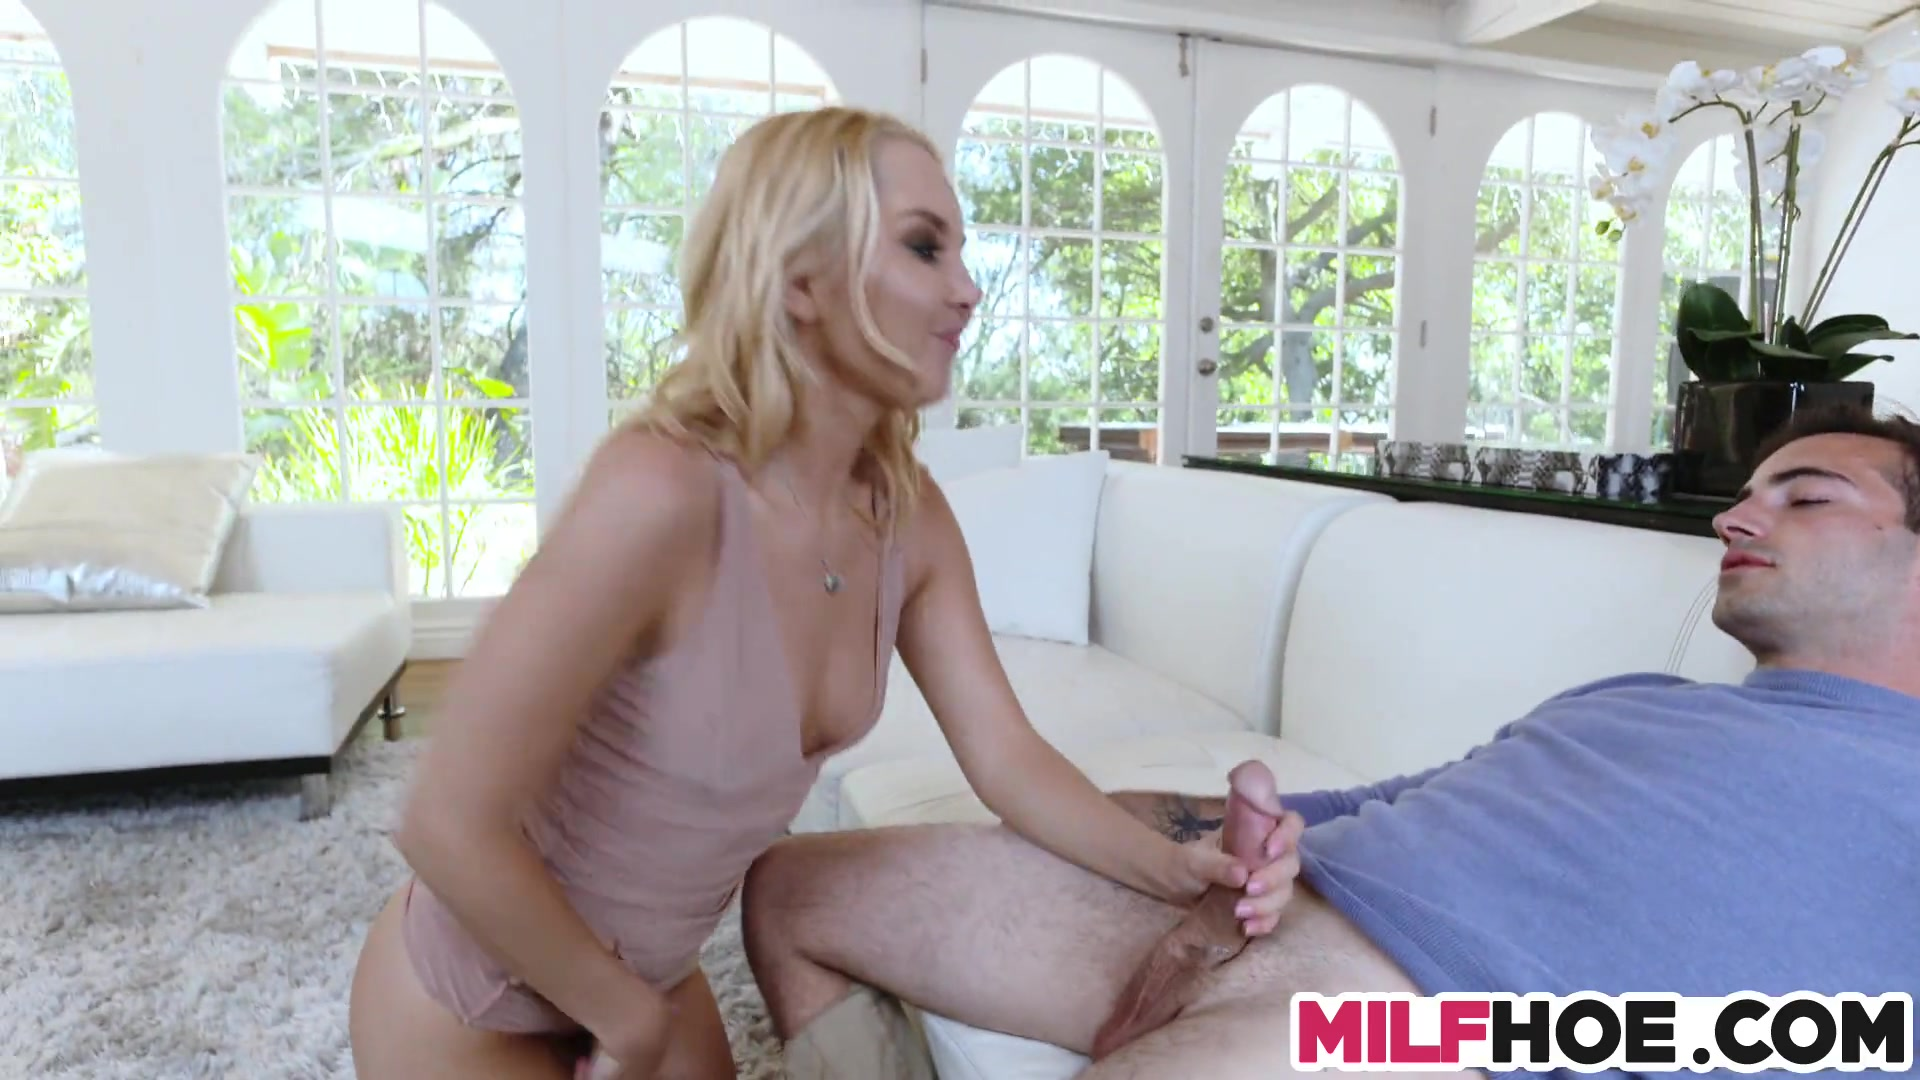 A Sloppy Affair With Wondrous Mummy And Bf